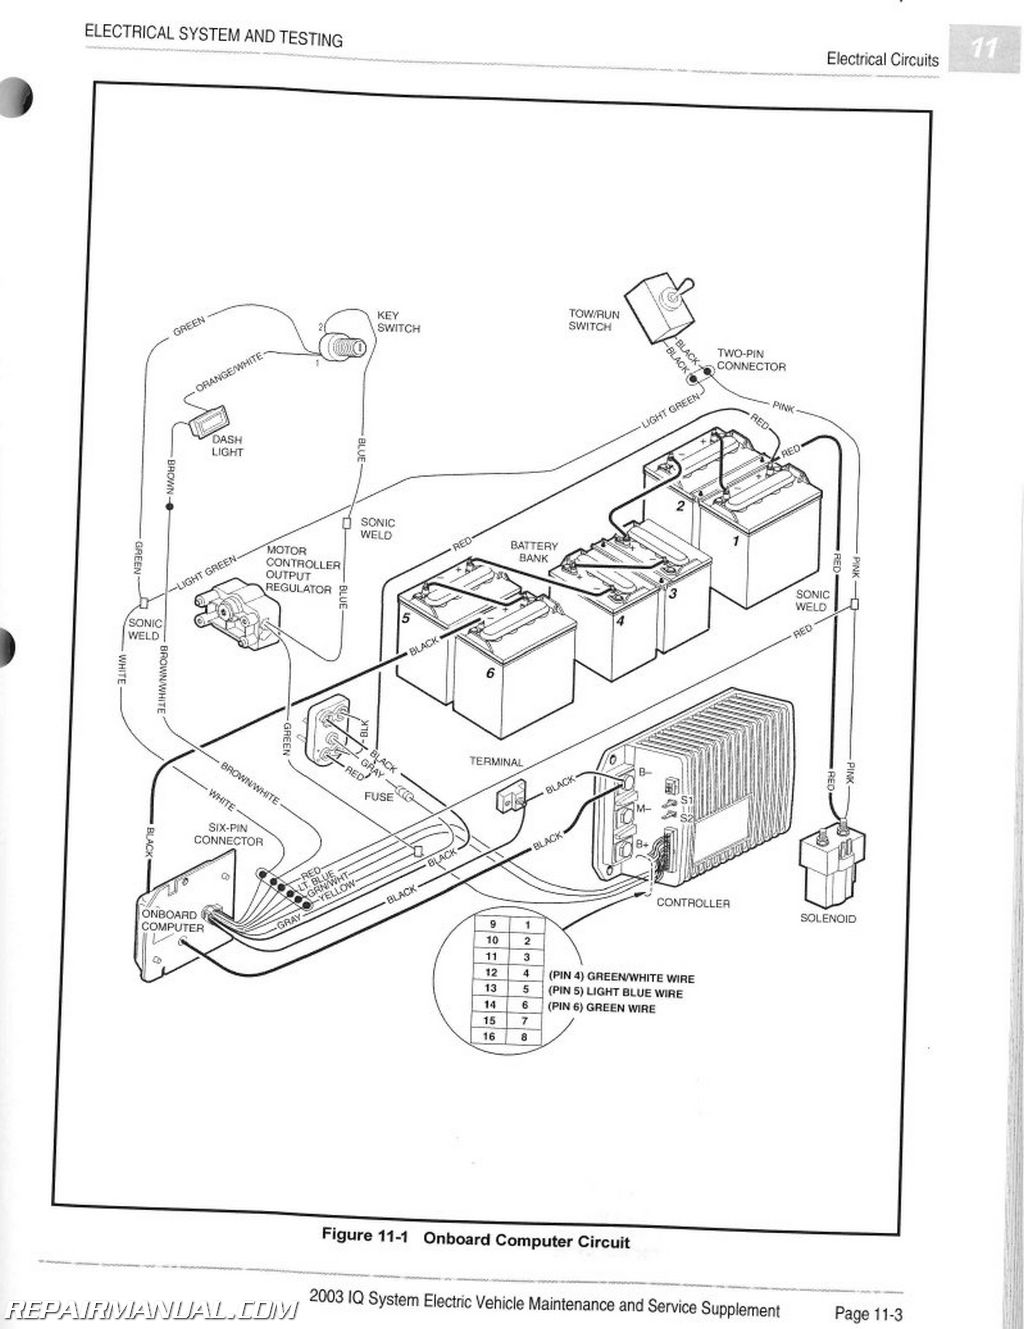 wiring diagram for club car golf cart transformer diagrams single phase mid 90s ds runs without key on